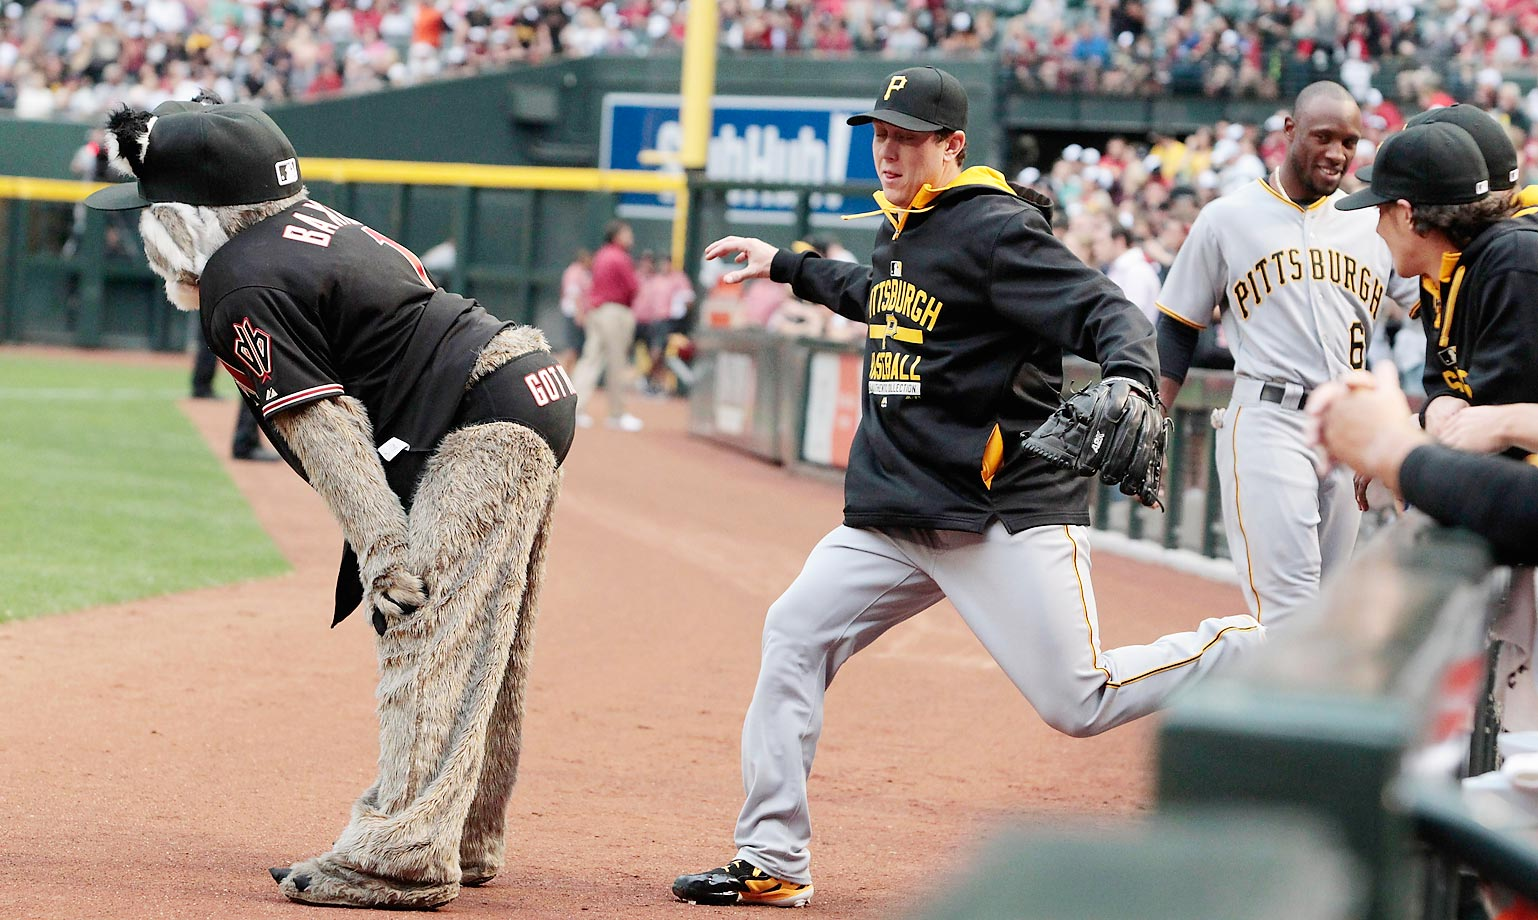 A Pittsburgh Pirates player jokingly pretends to kick Arizona Diamondbacks mascot Baxter before the start of a game.